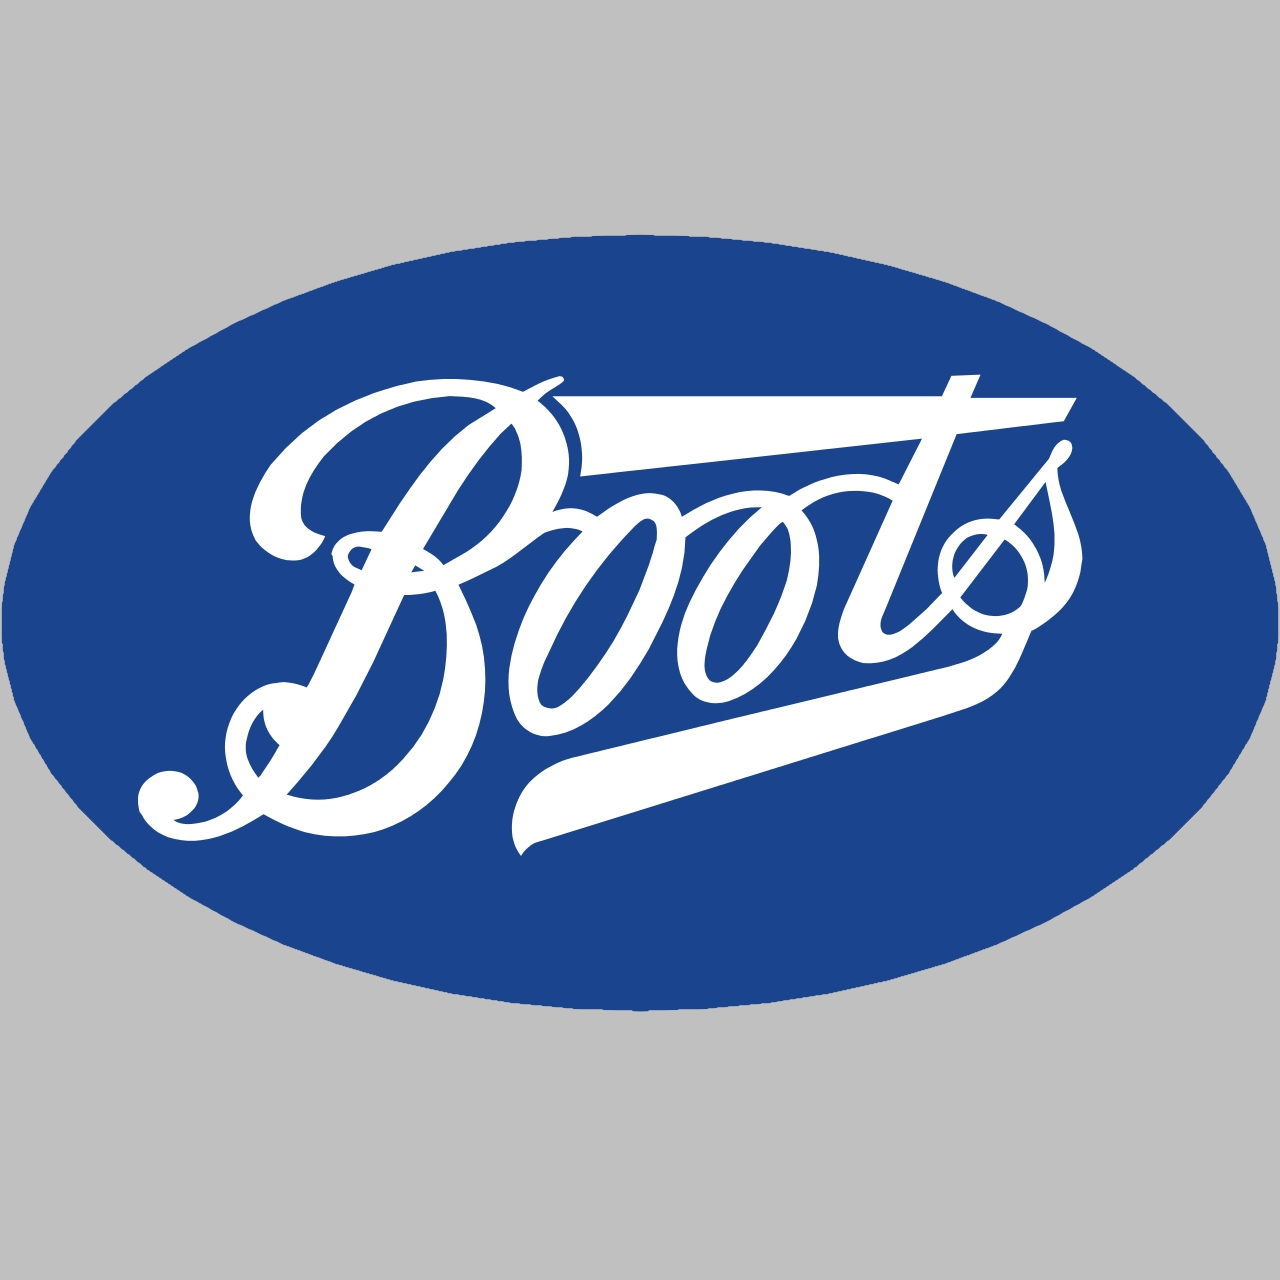 boots black friday logo